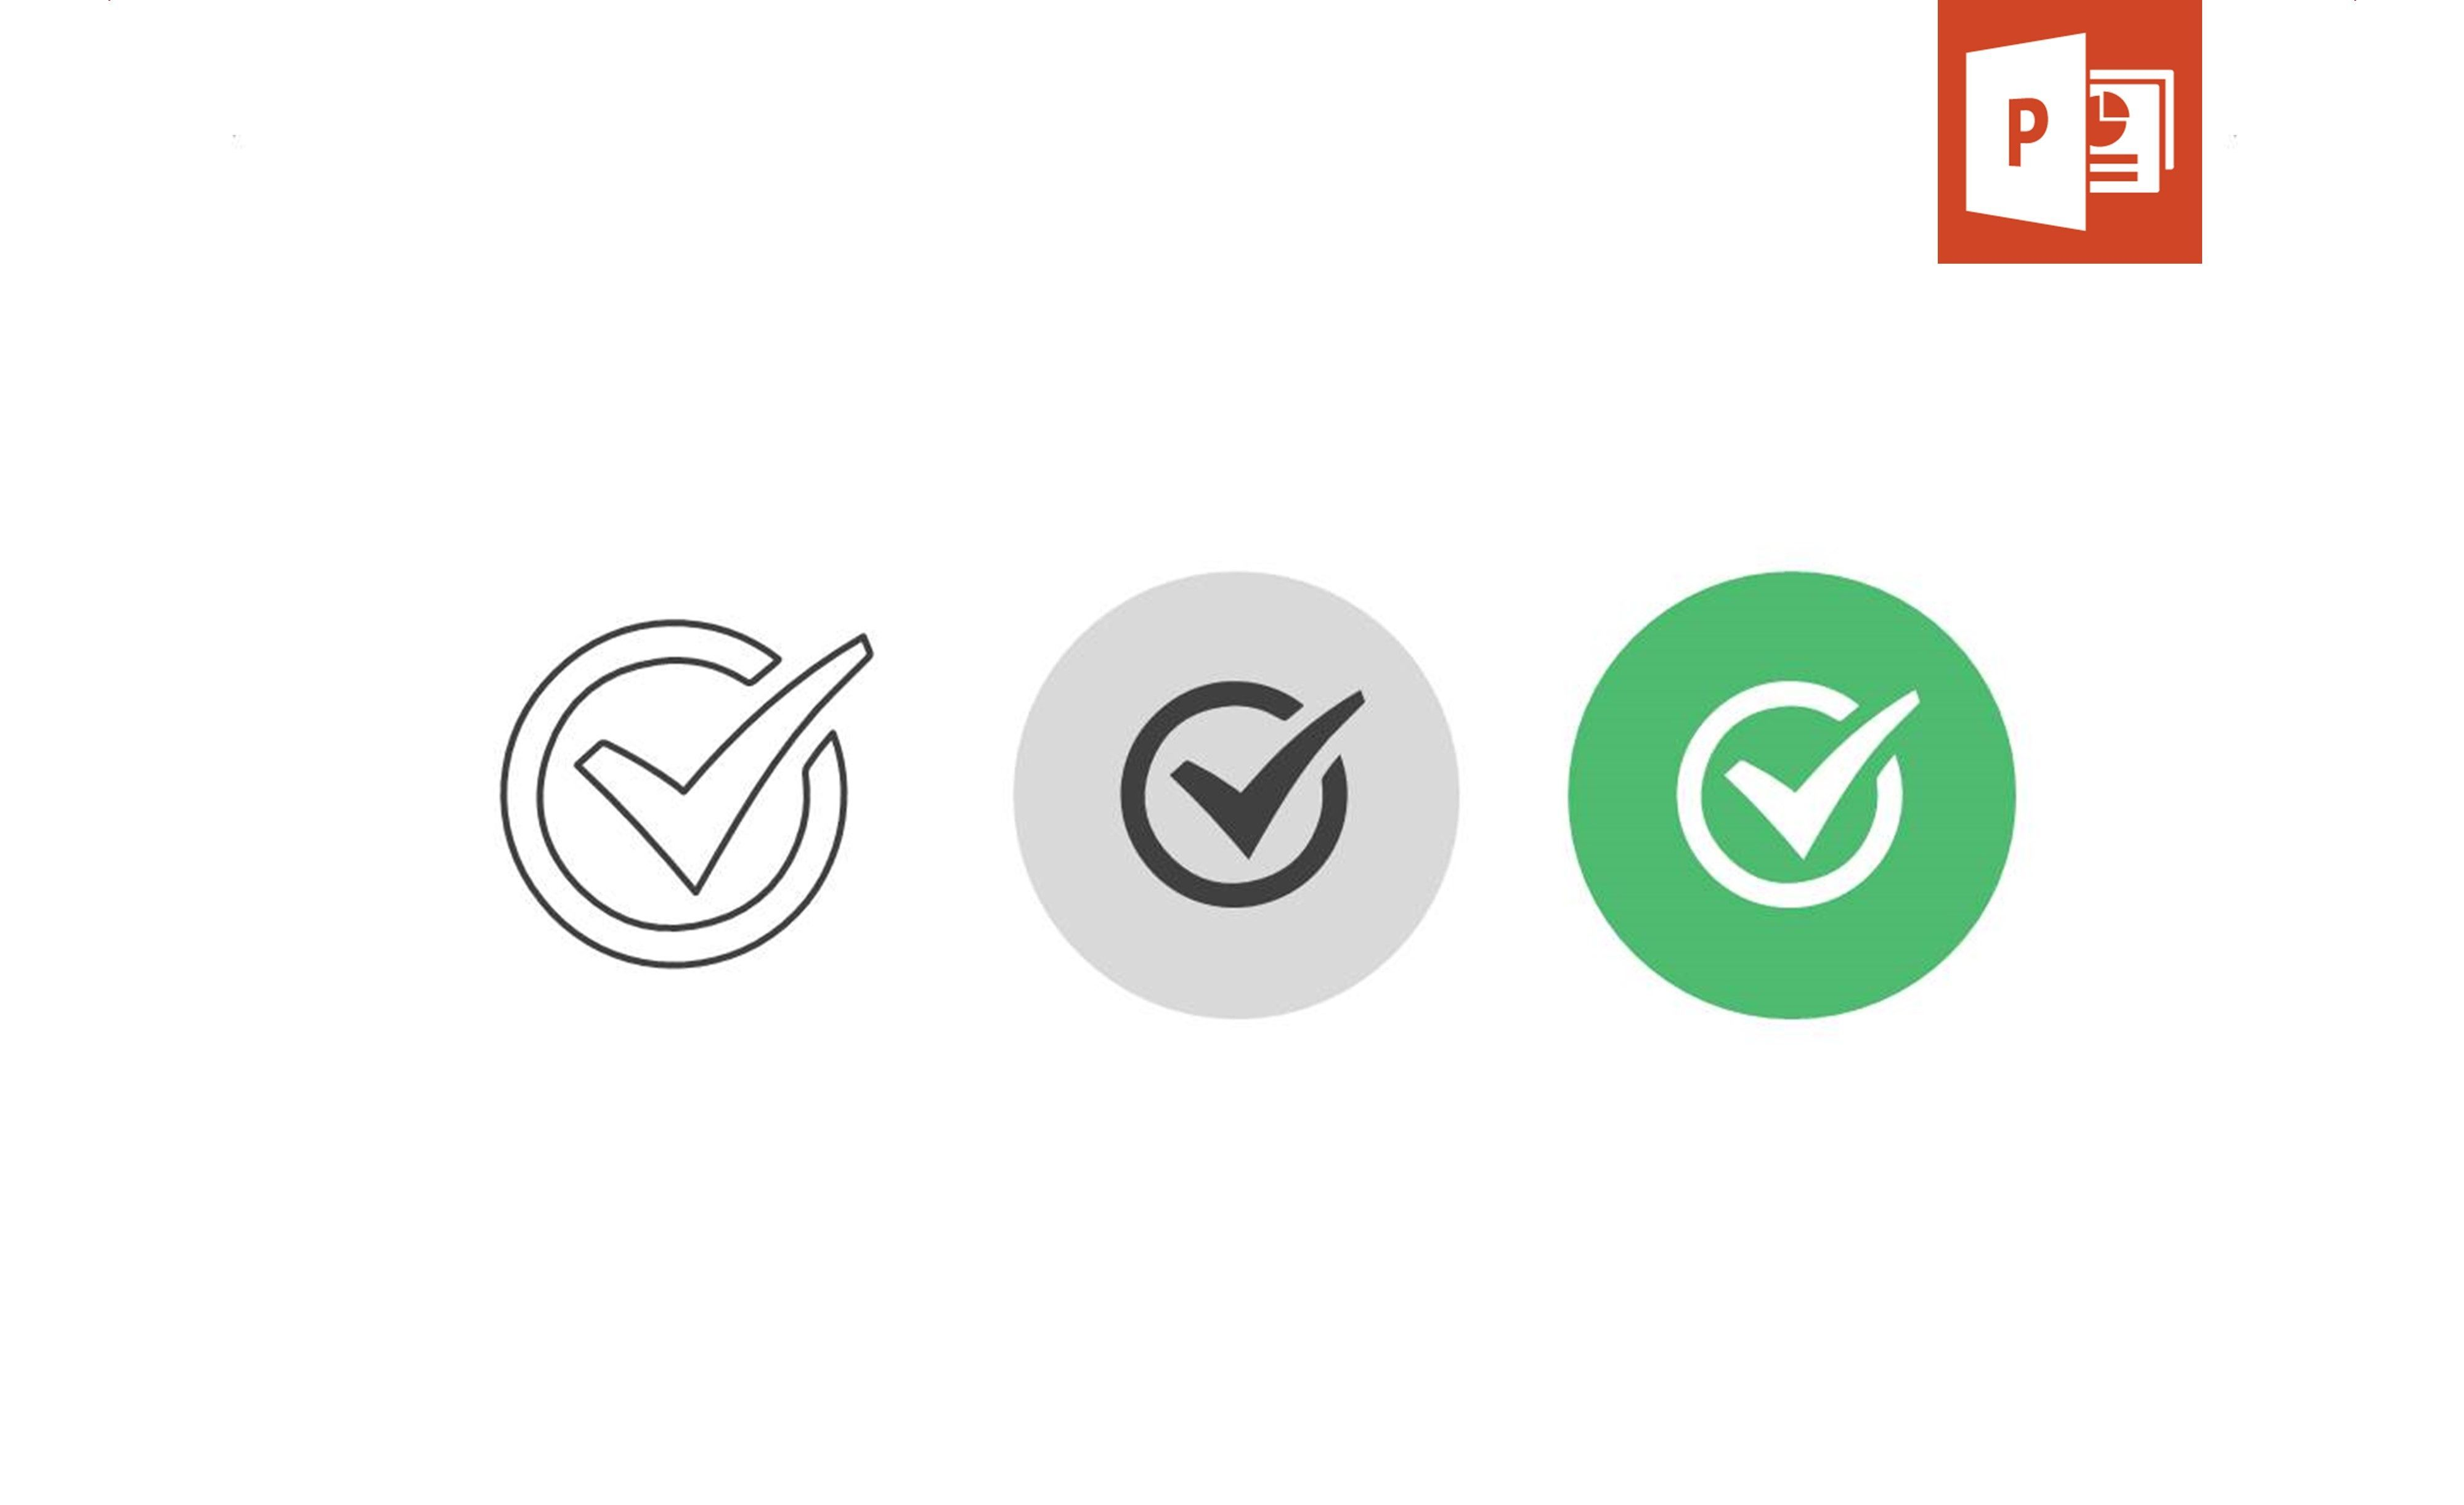 Use our checkmark icon pack to illustrate your presentation